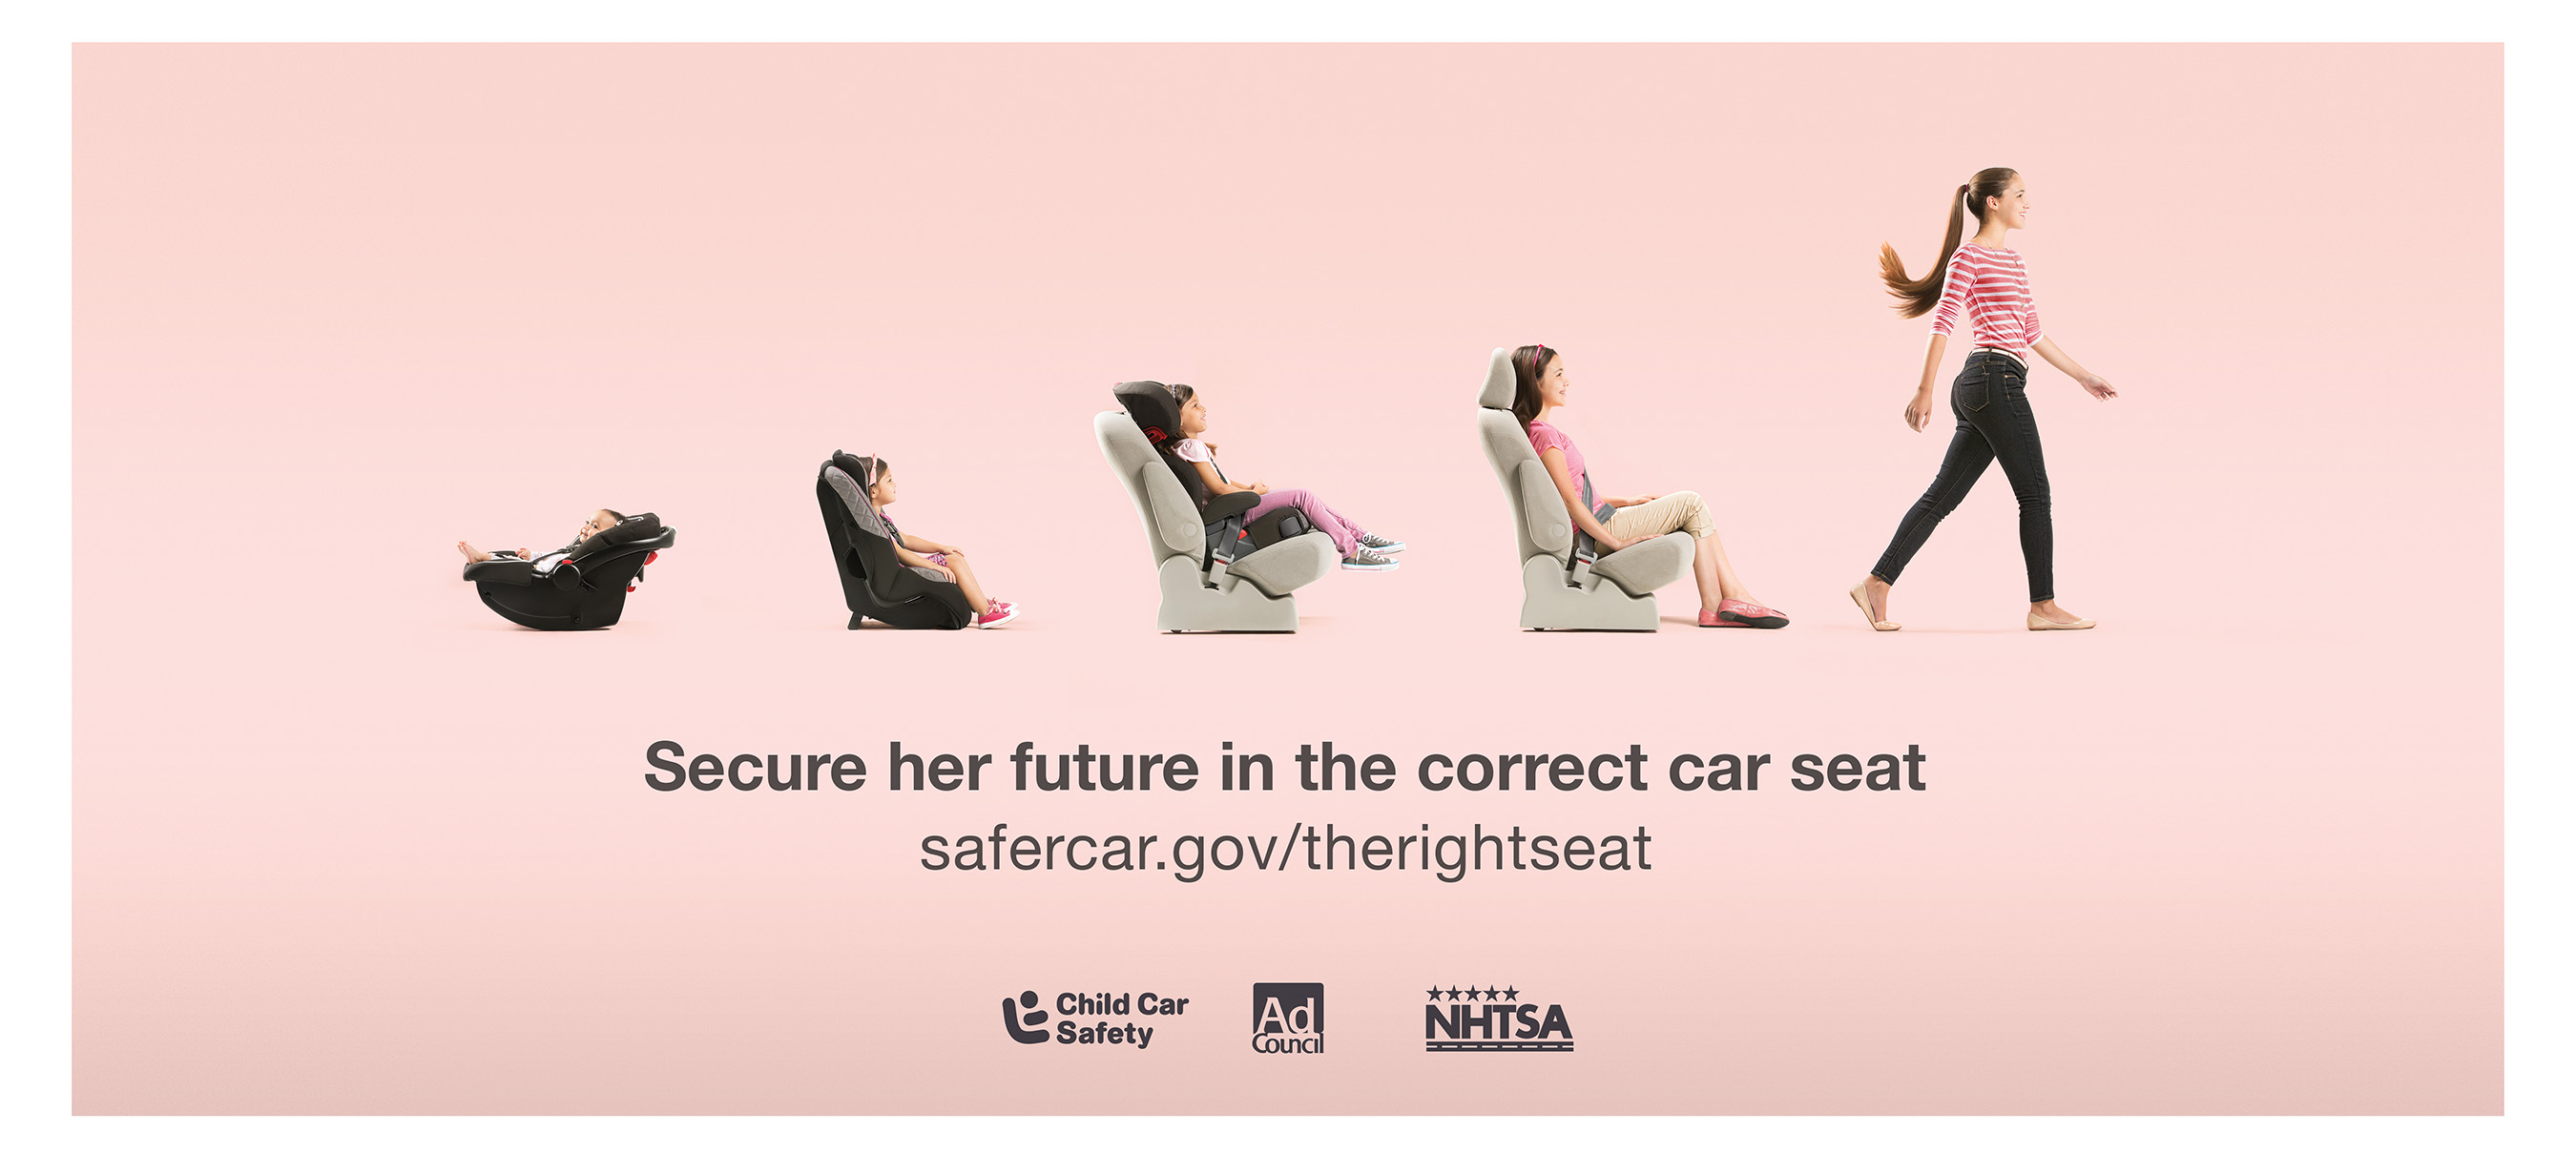 Car Seat Safety Check >> U.S. Department of Transportation and the Ad Council Kick ...